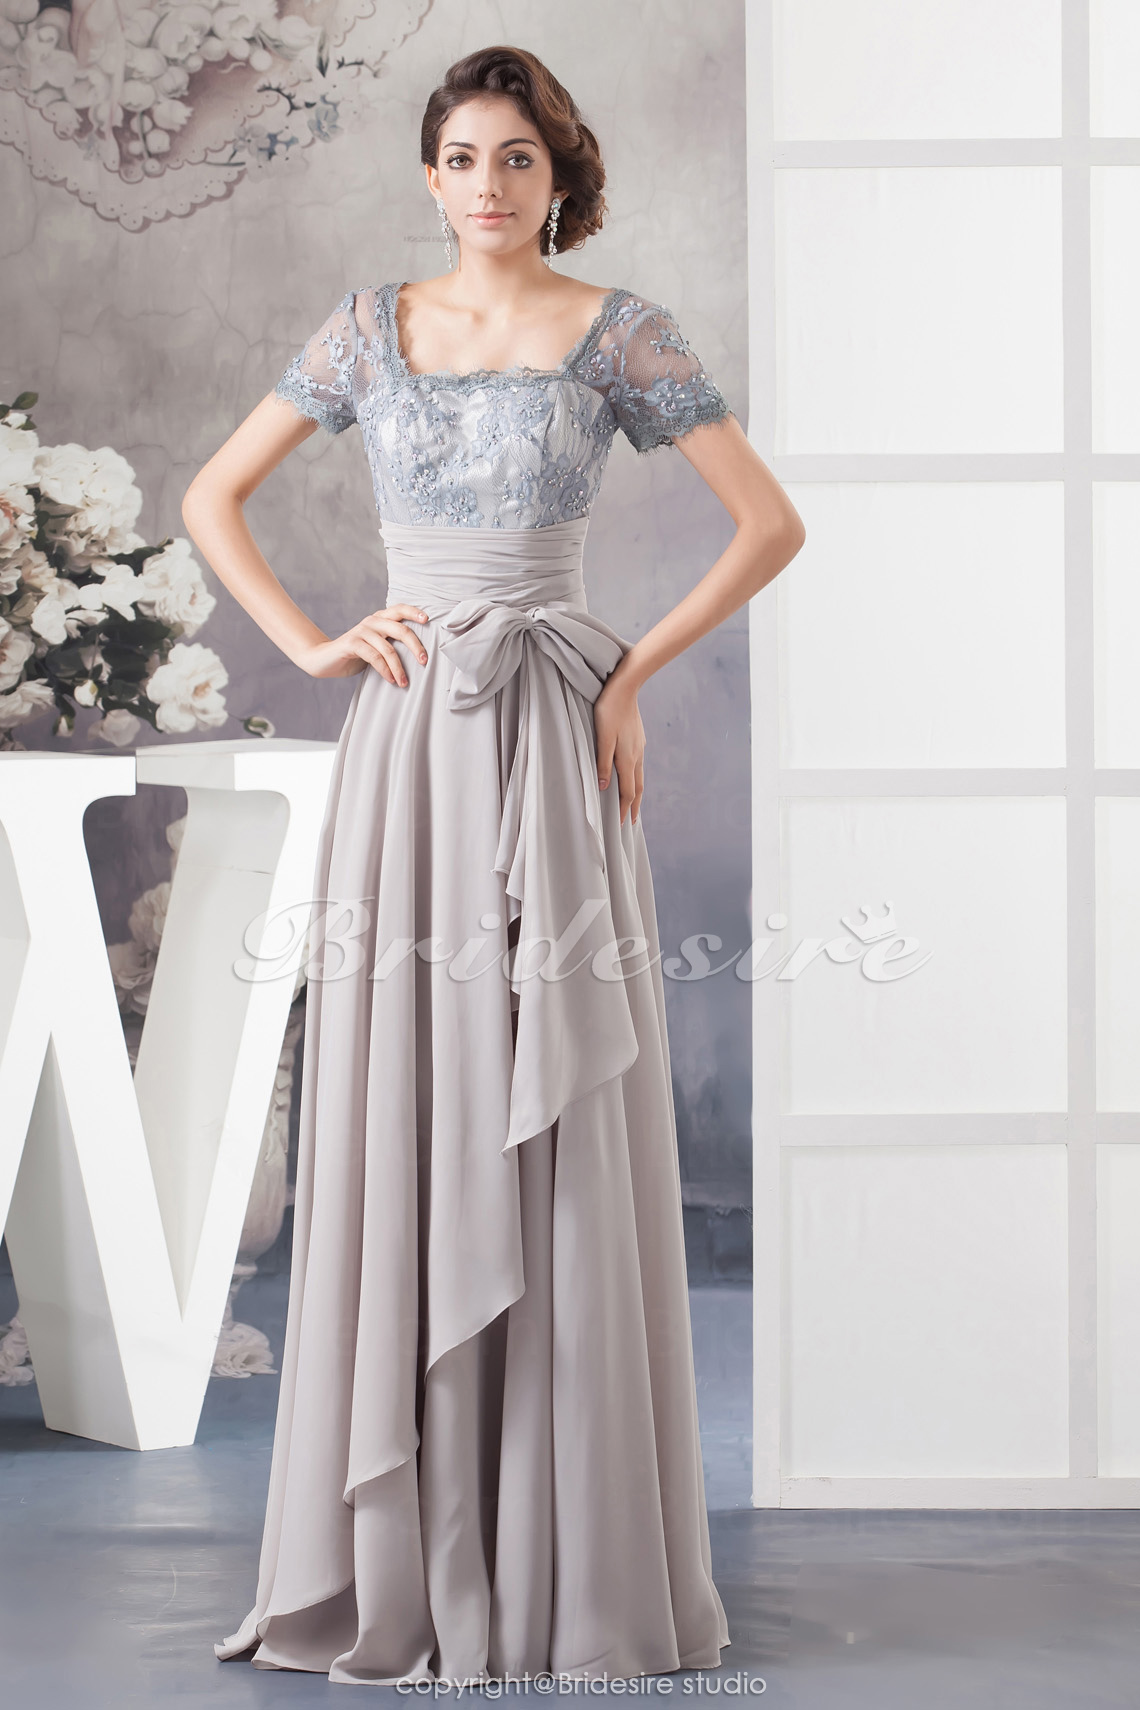 A-line Square Floor-length Short Sleeve Chiffon Lace Dress